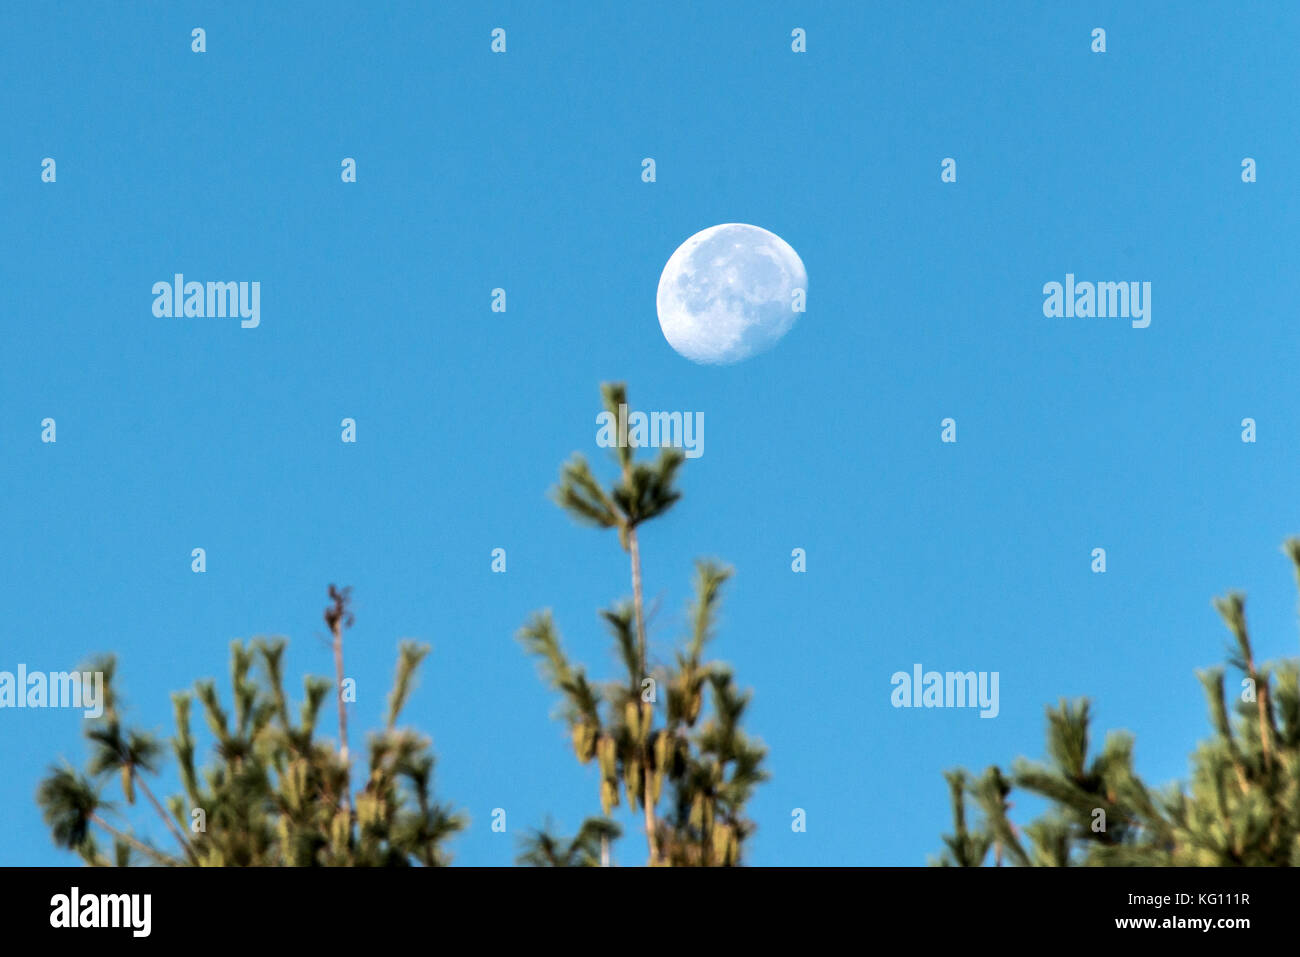 The moon with blue sky in day time behind blurred twigs of trees in the foreground - Stock Image